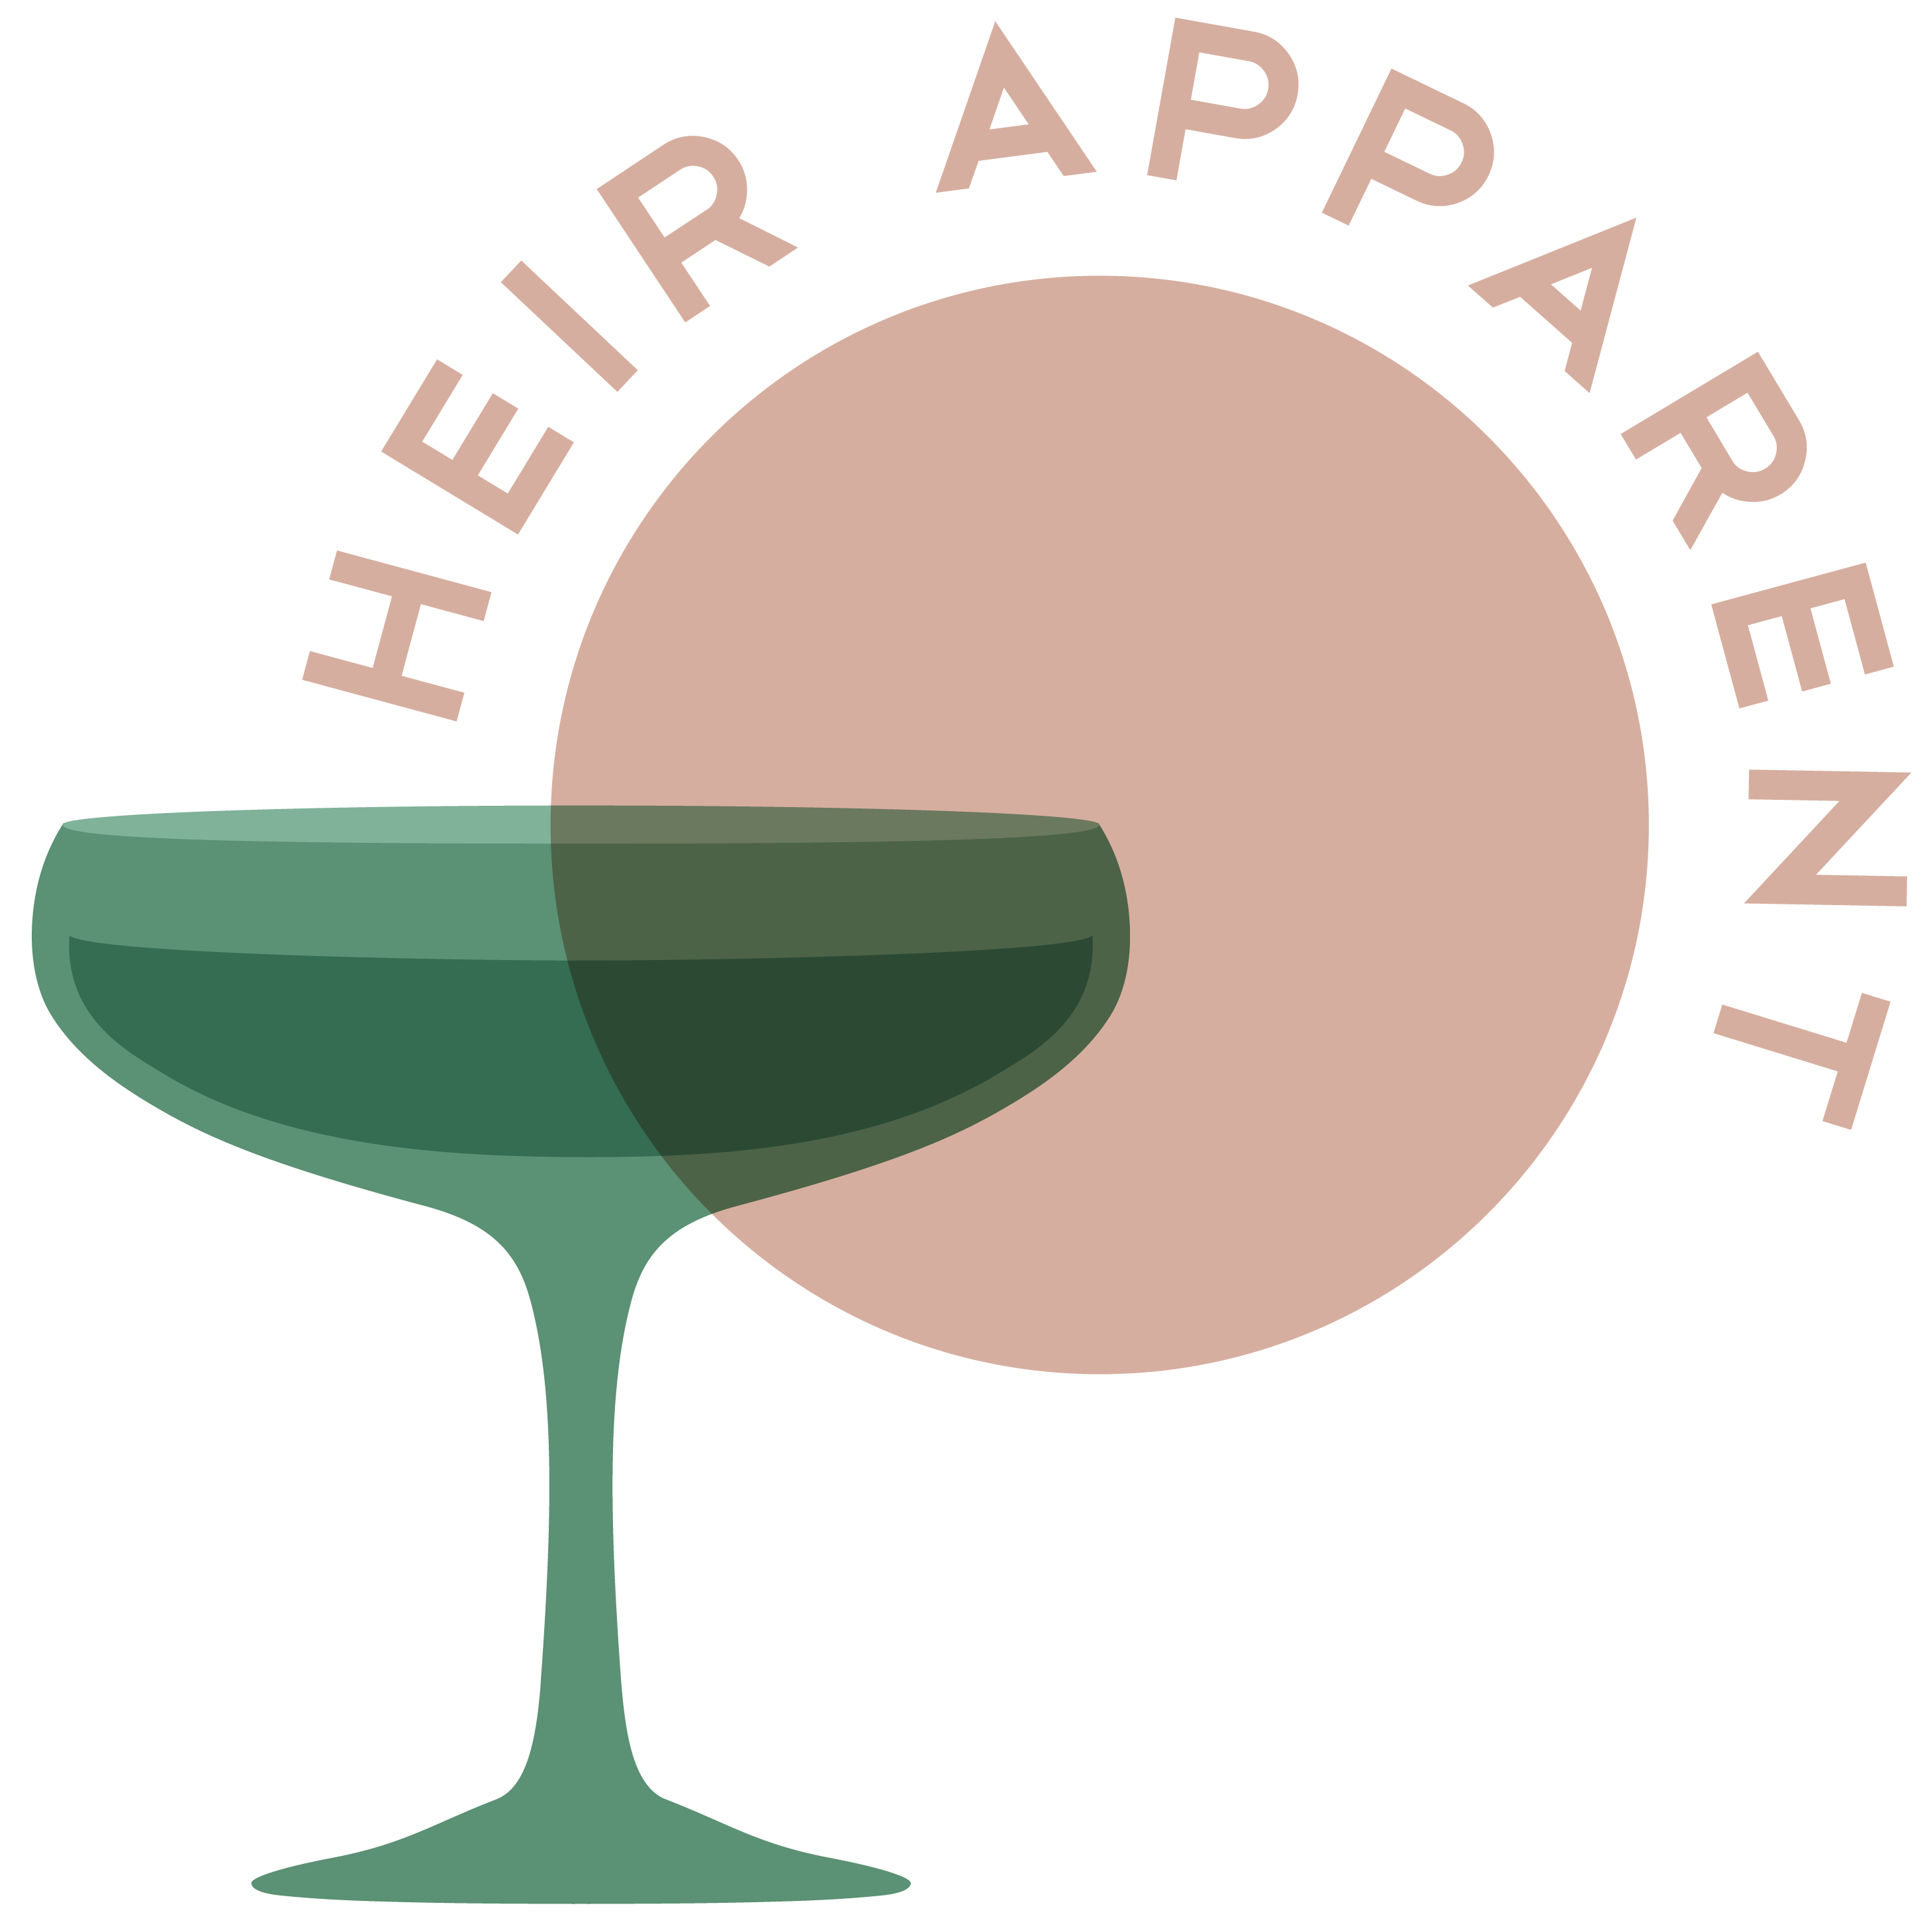 HEIR APPARENT DRINKS